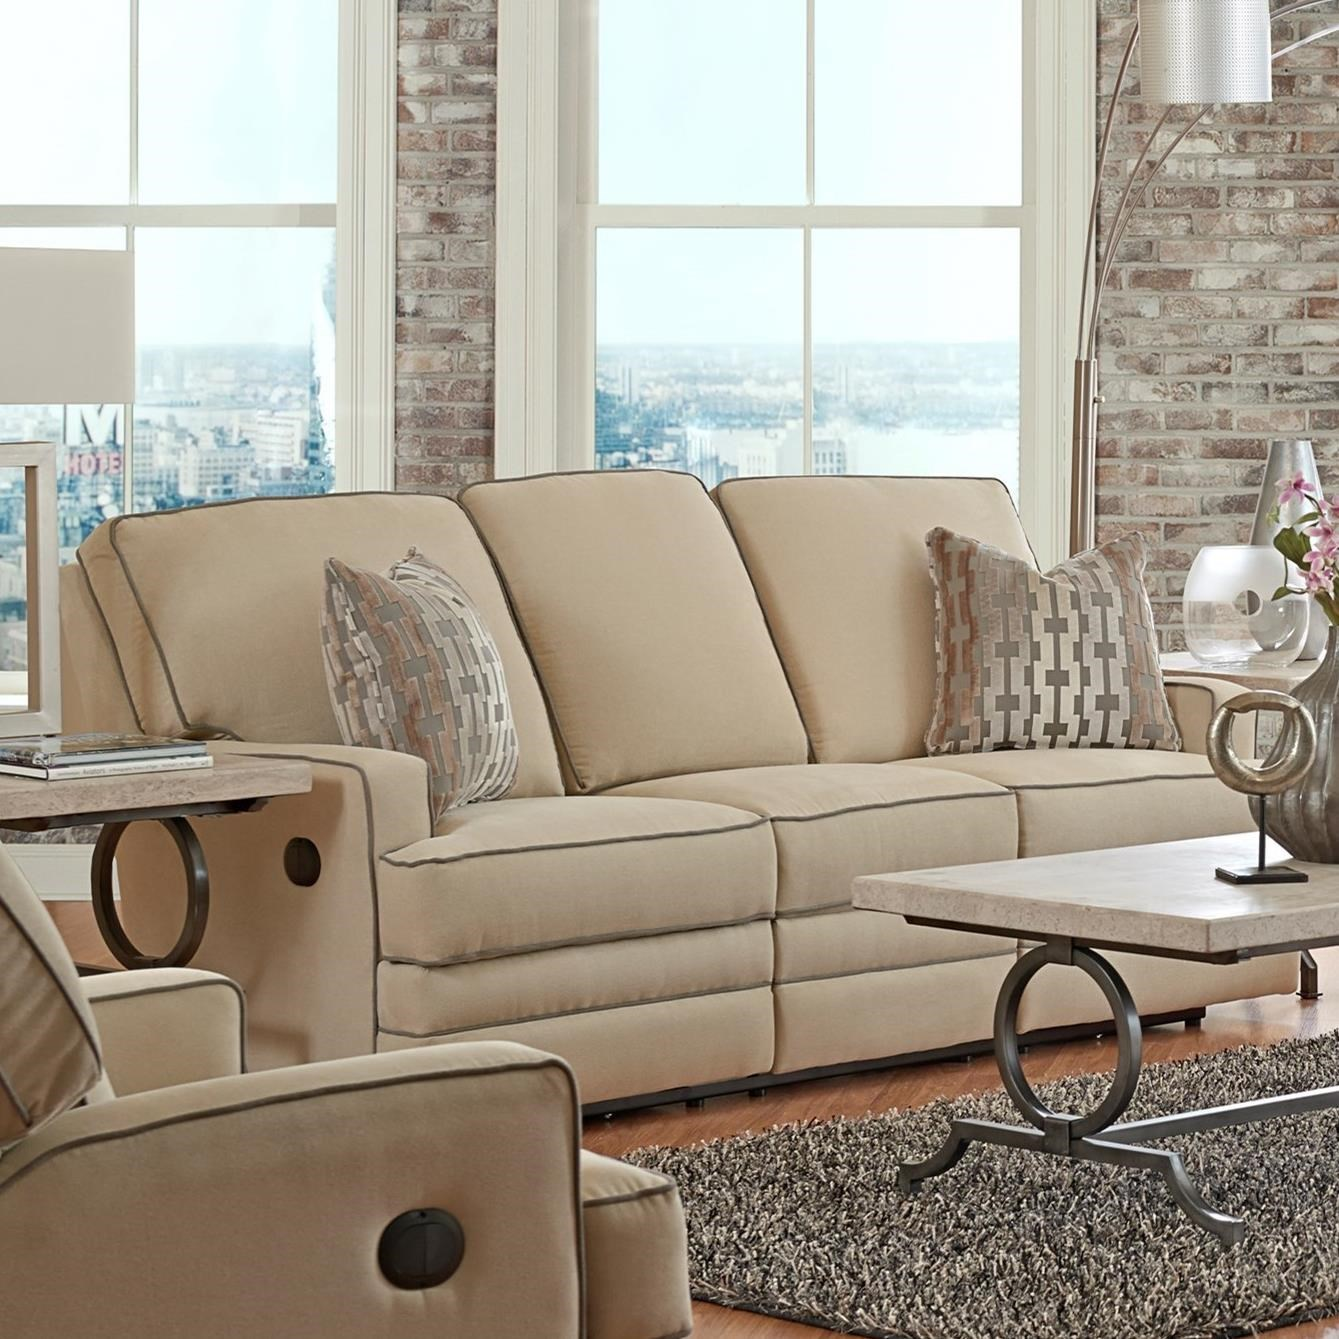 klaussner grand power reclining sofa slipcovers for and loveseat chapman casual with throw pillows